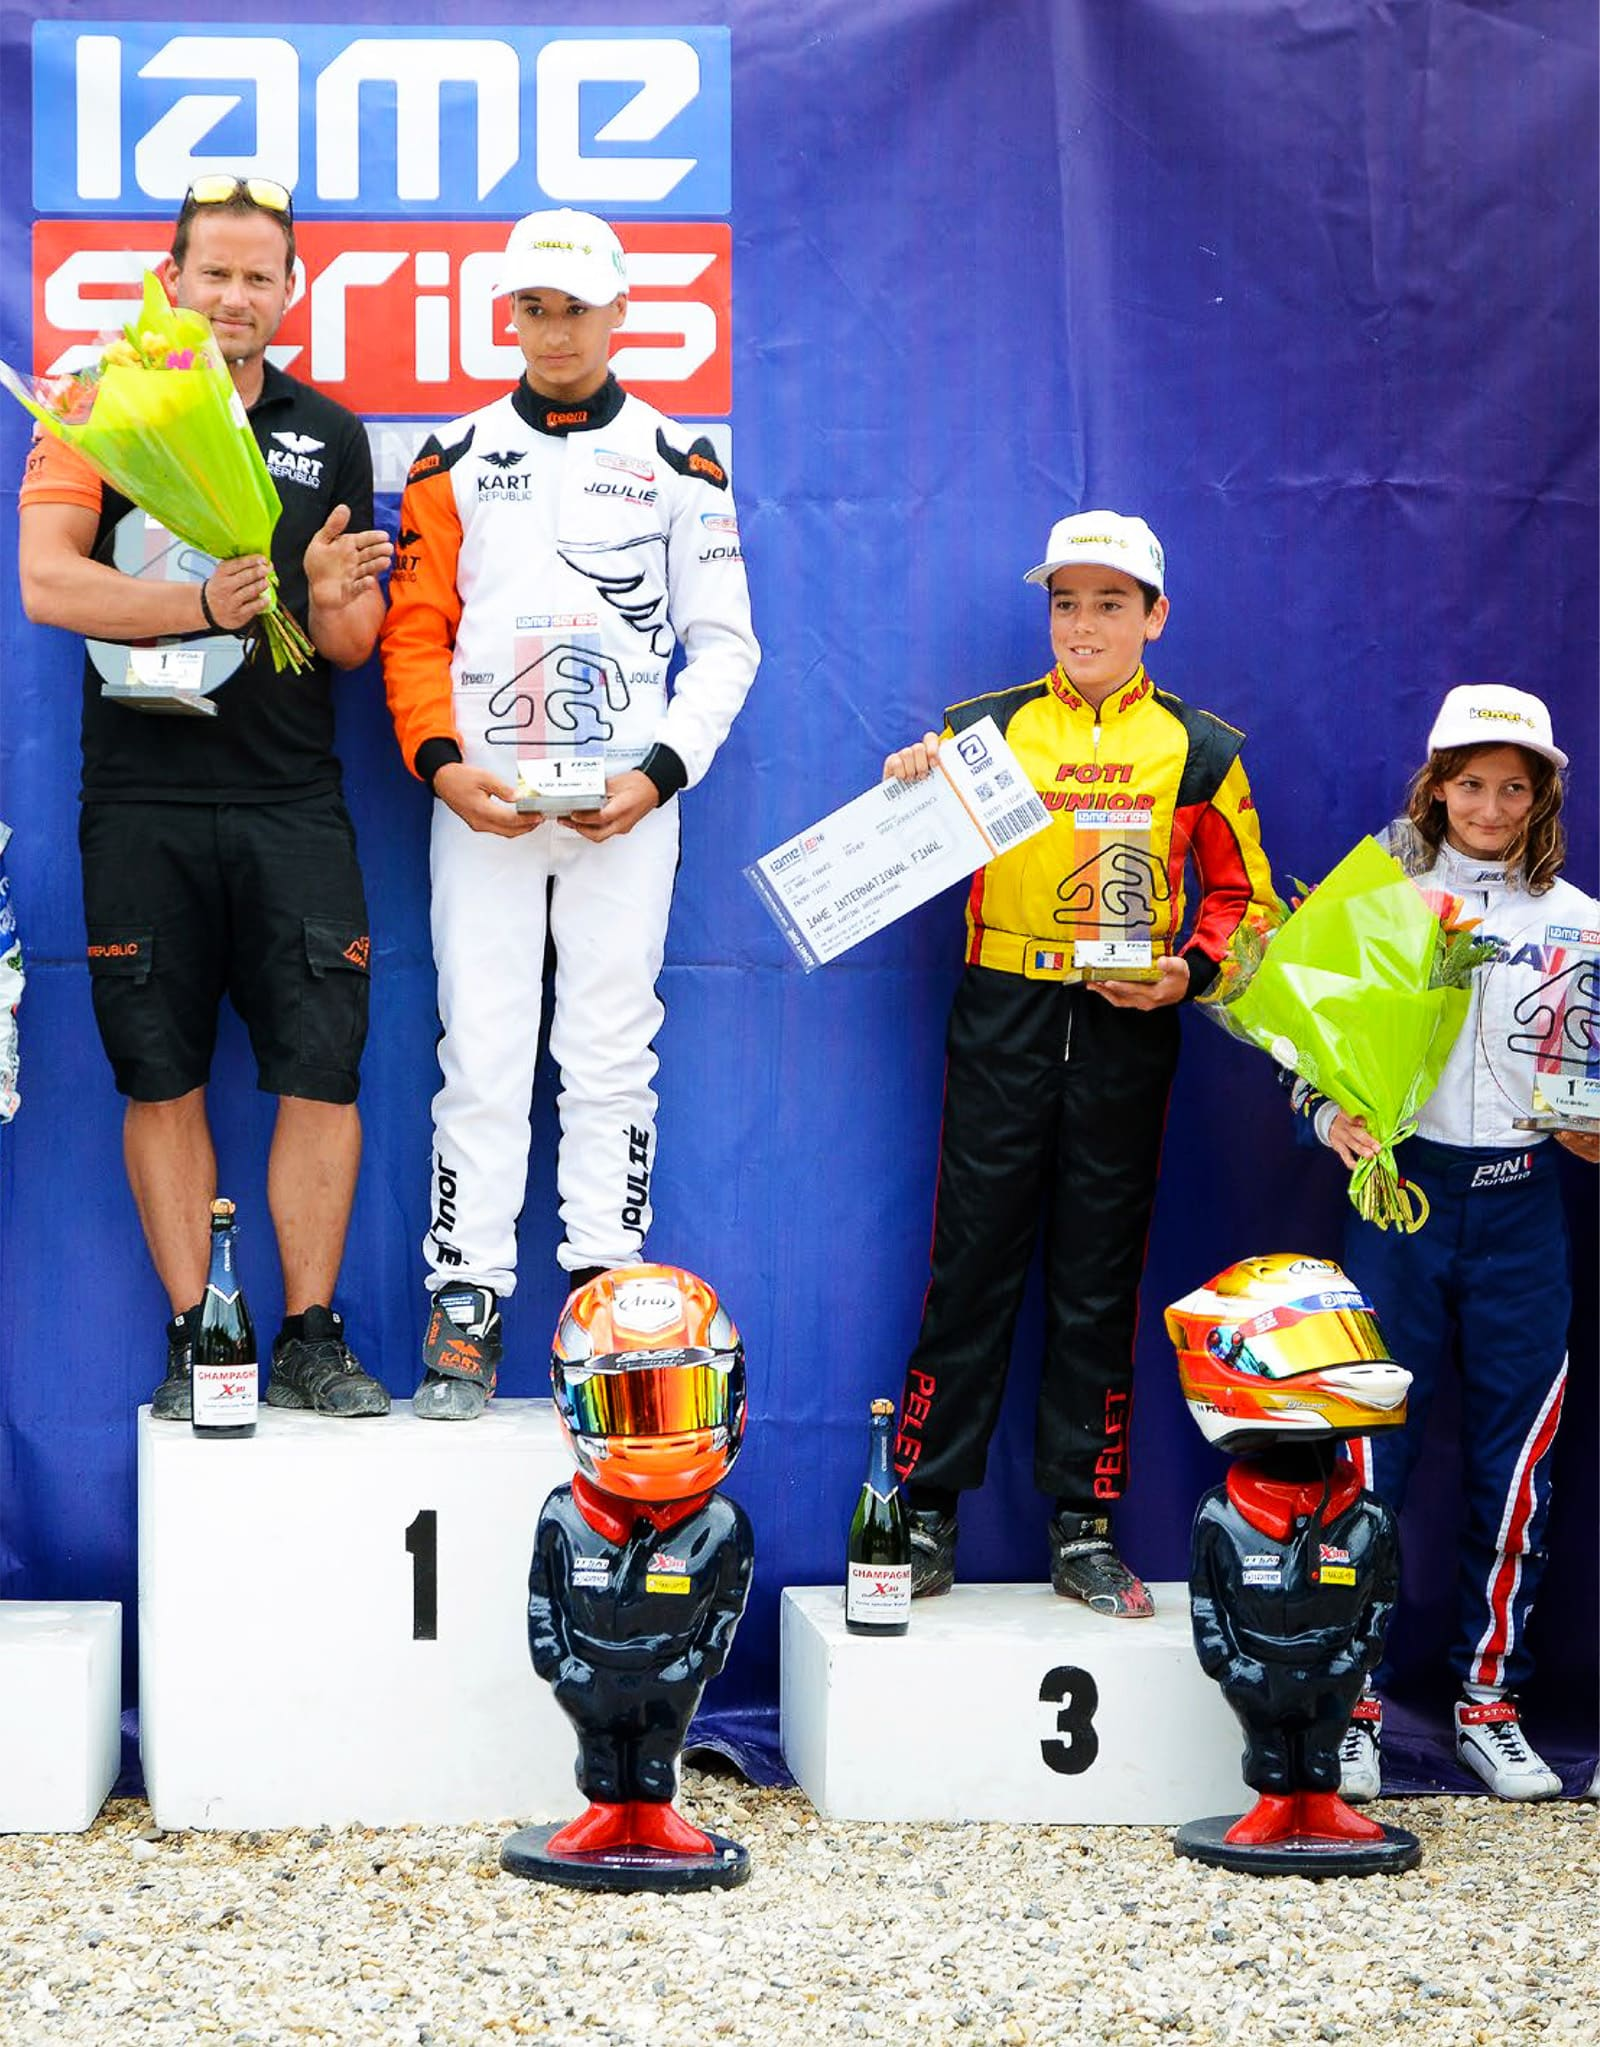 Doriane Pin 4th in her first race in catégory IAME Series France X30 Junior.